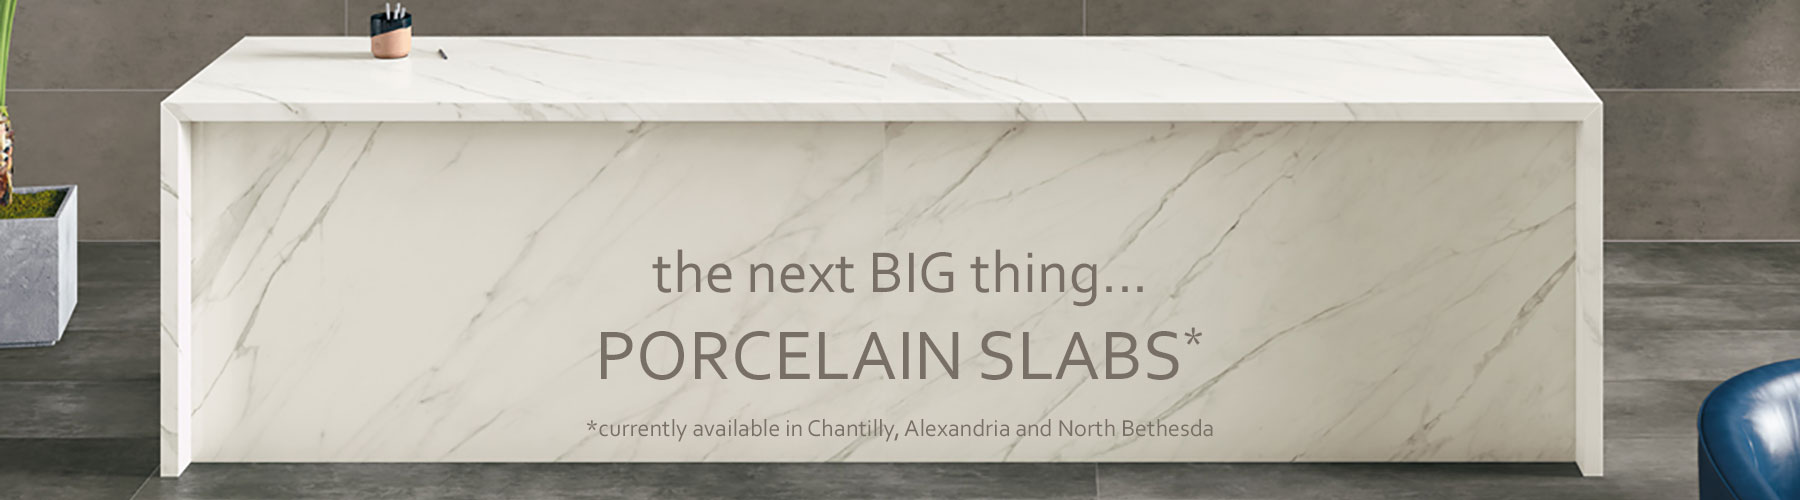 Porcelain Slabs